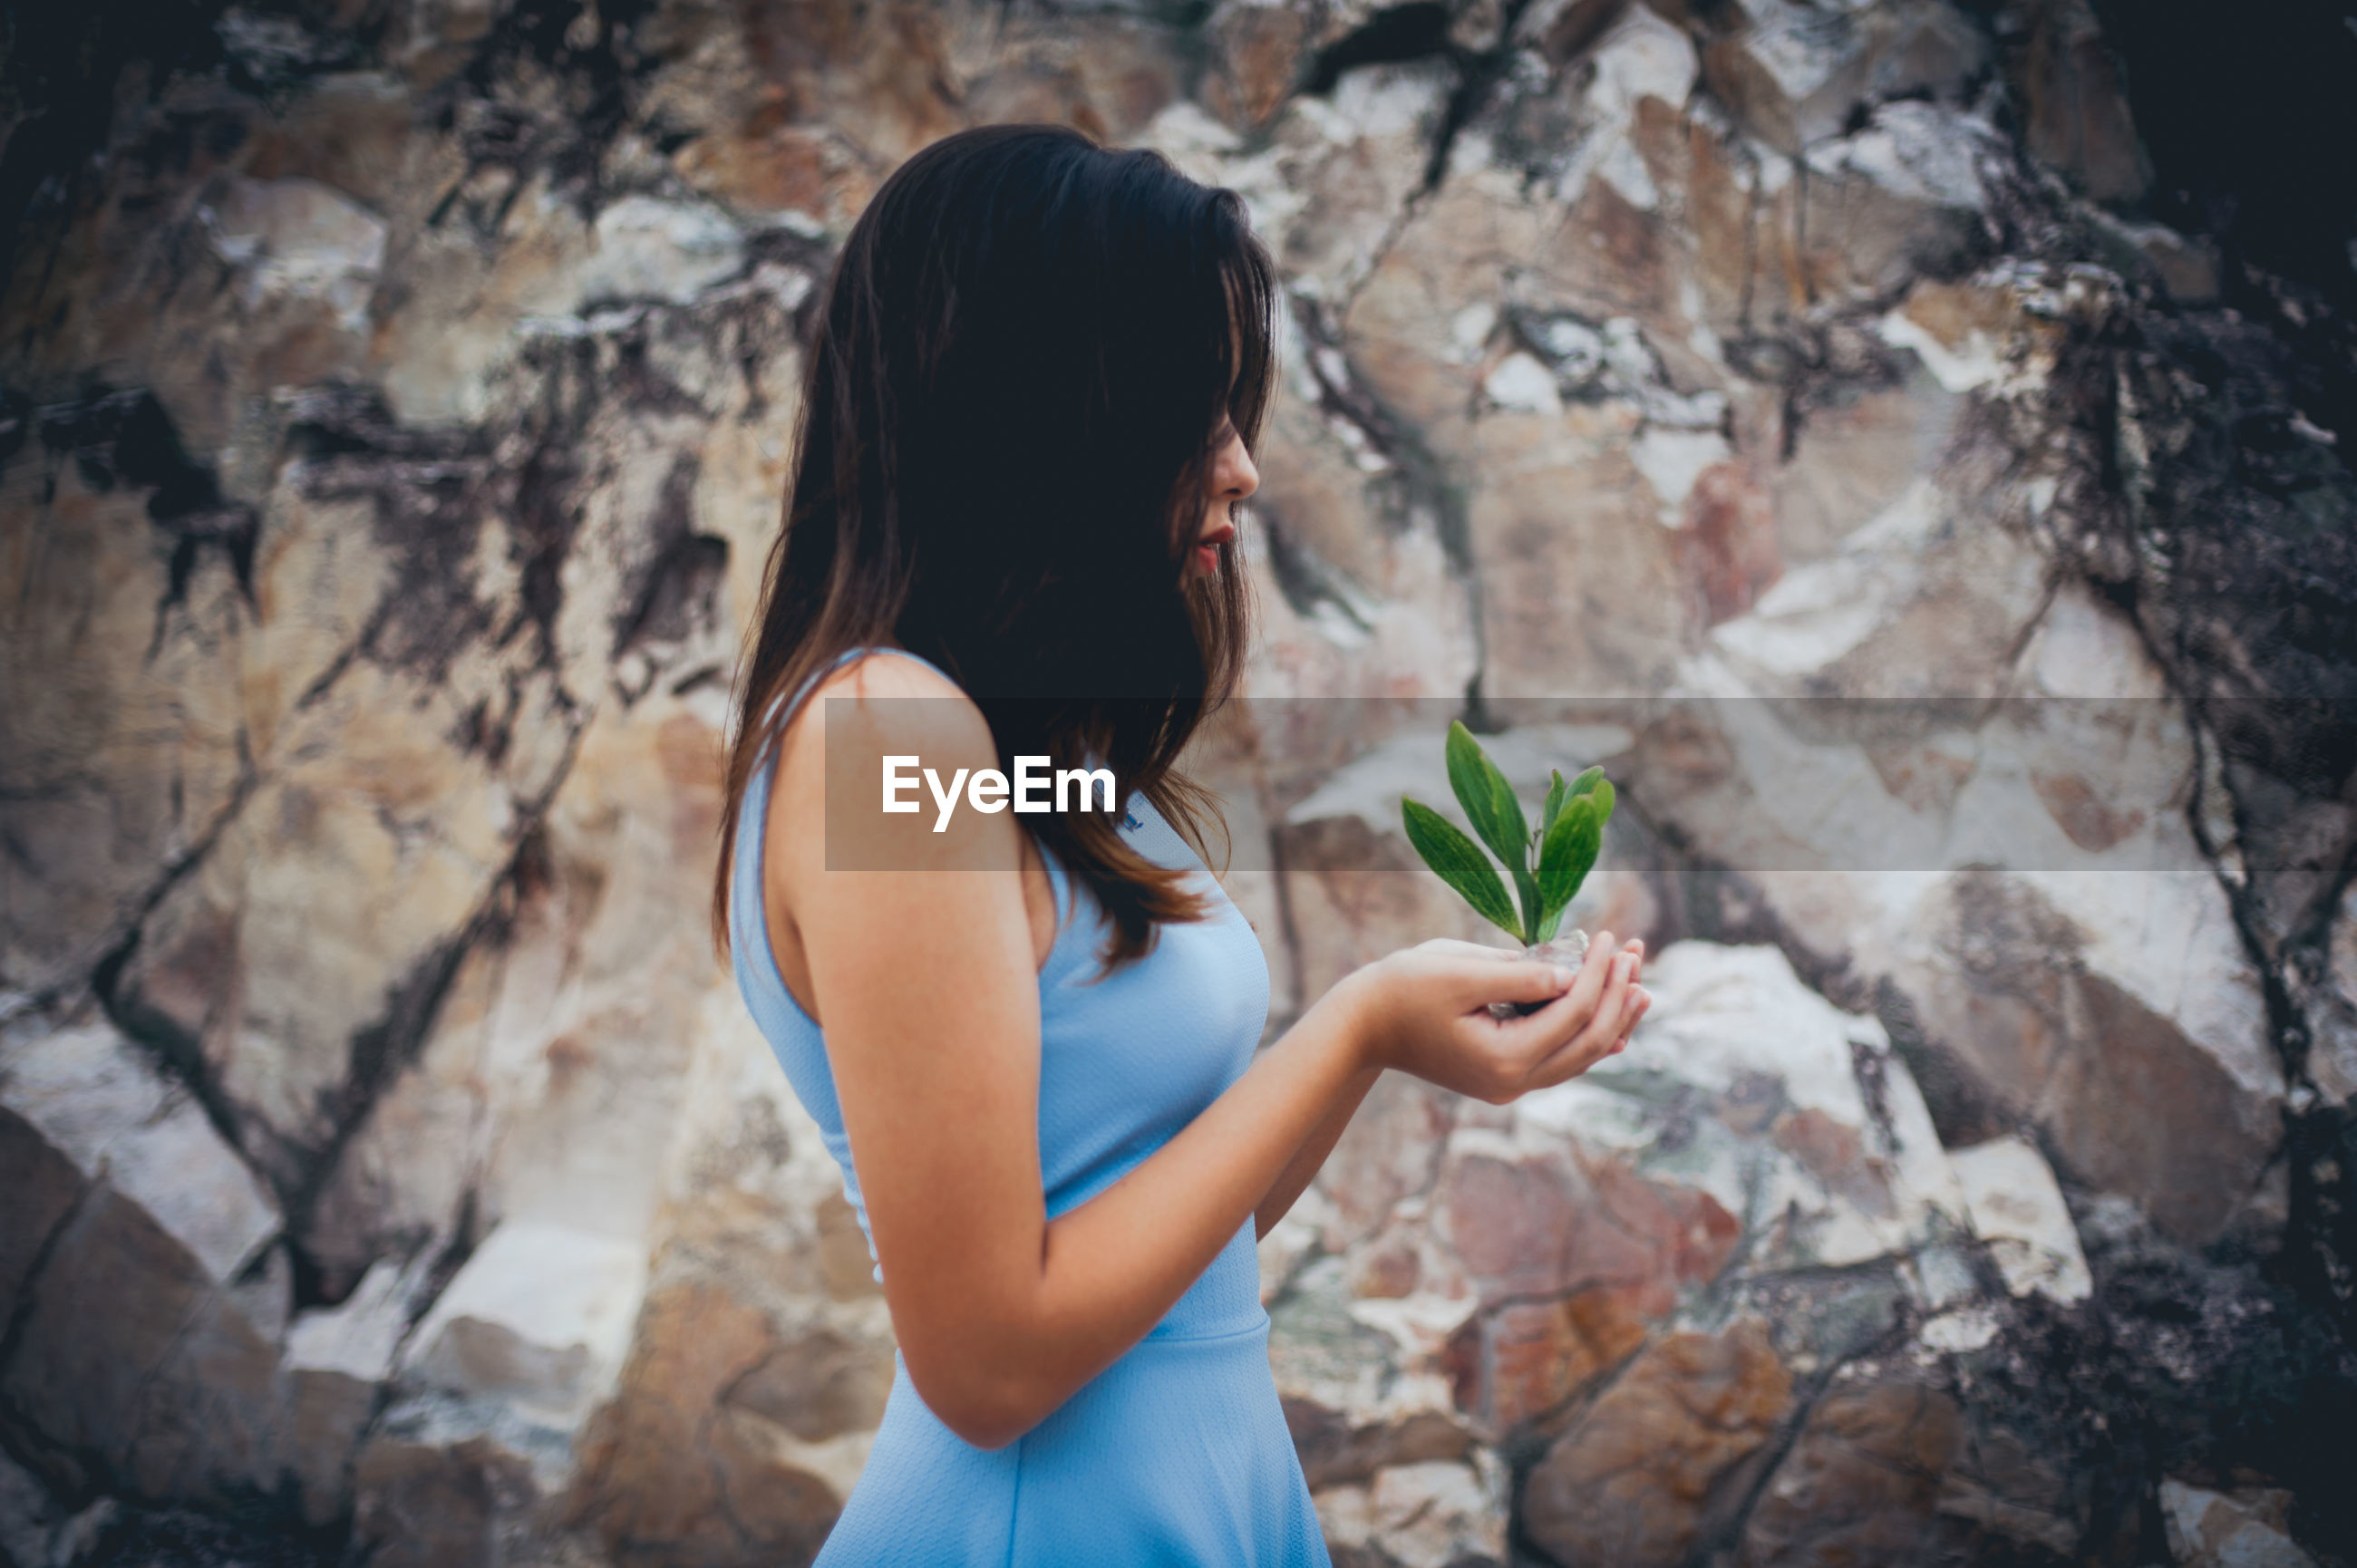 Woman standing with plant in hand by rocks